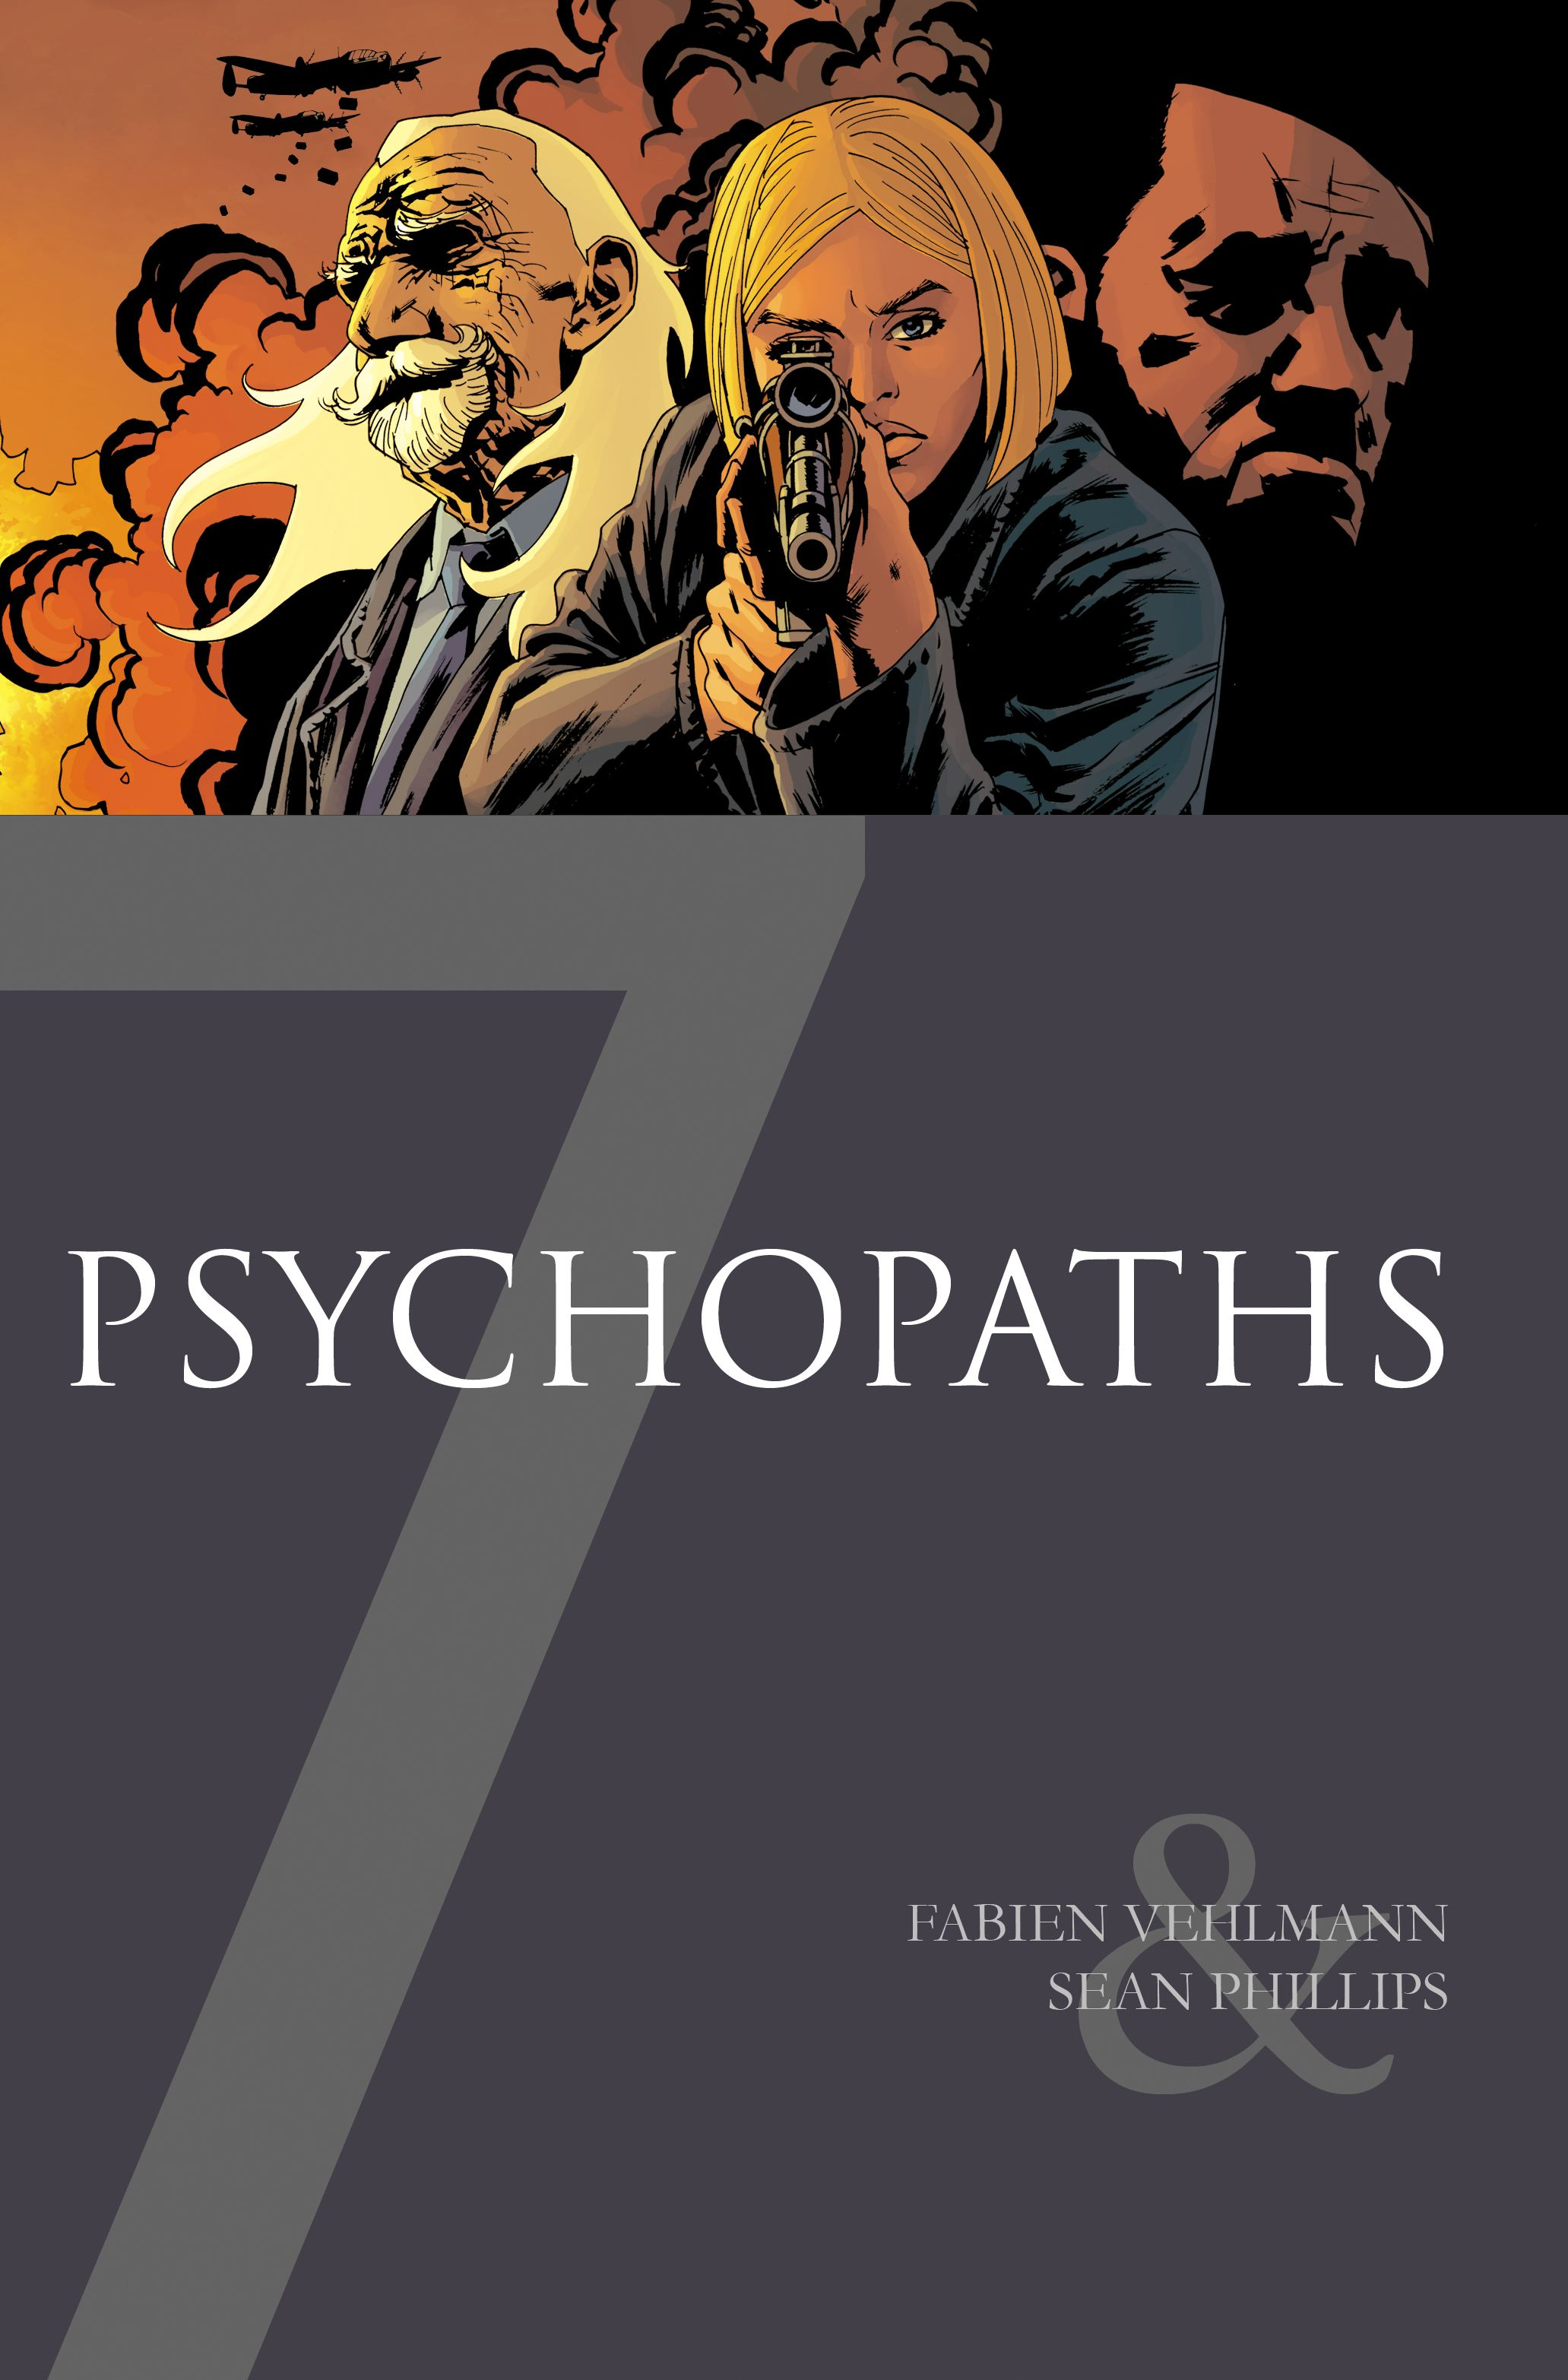 7 psychopaths 9781608860326 hr